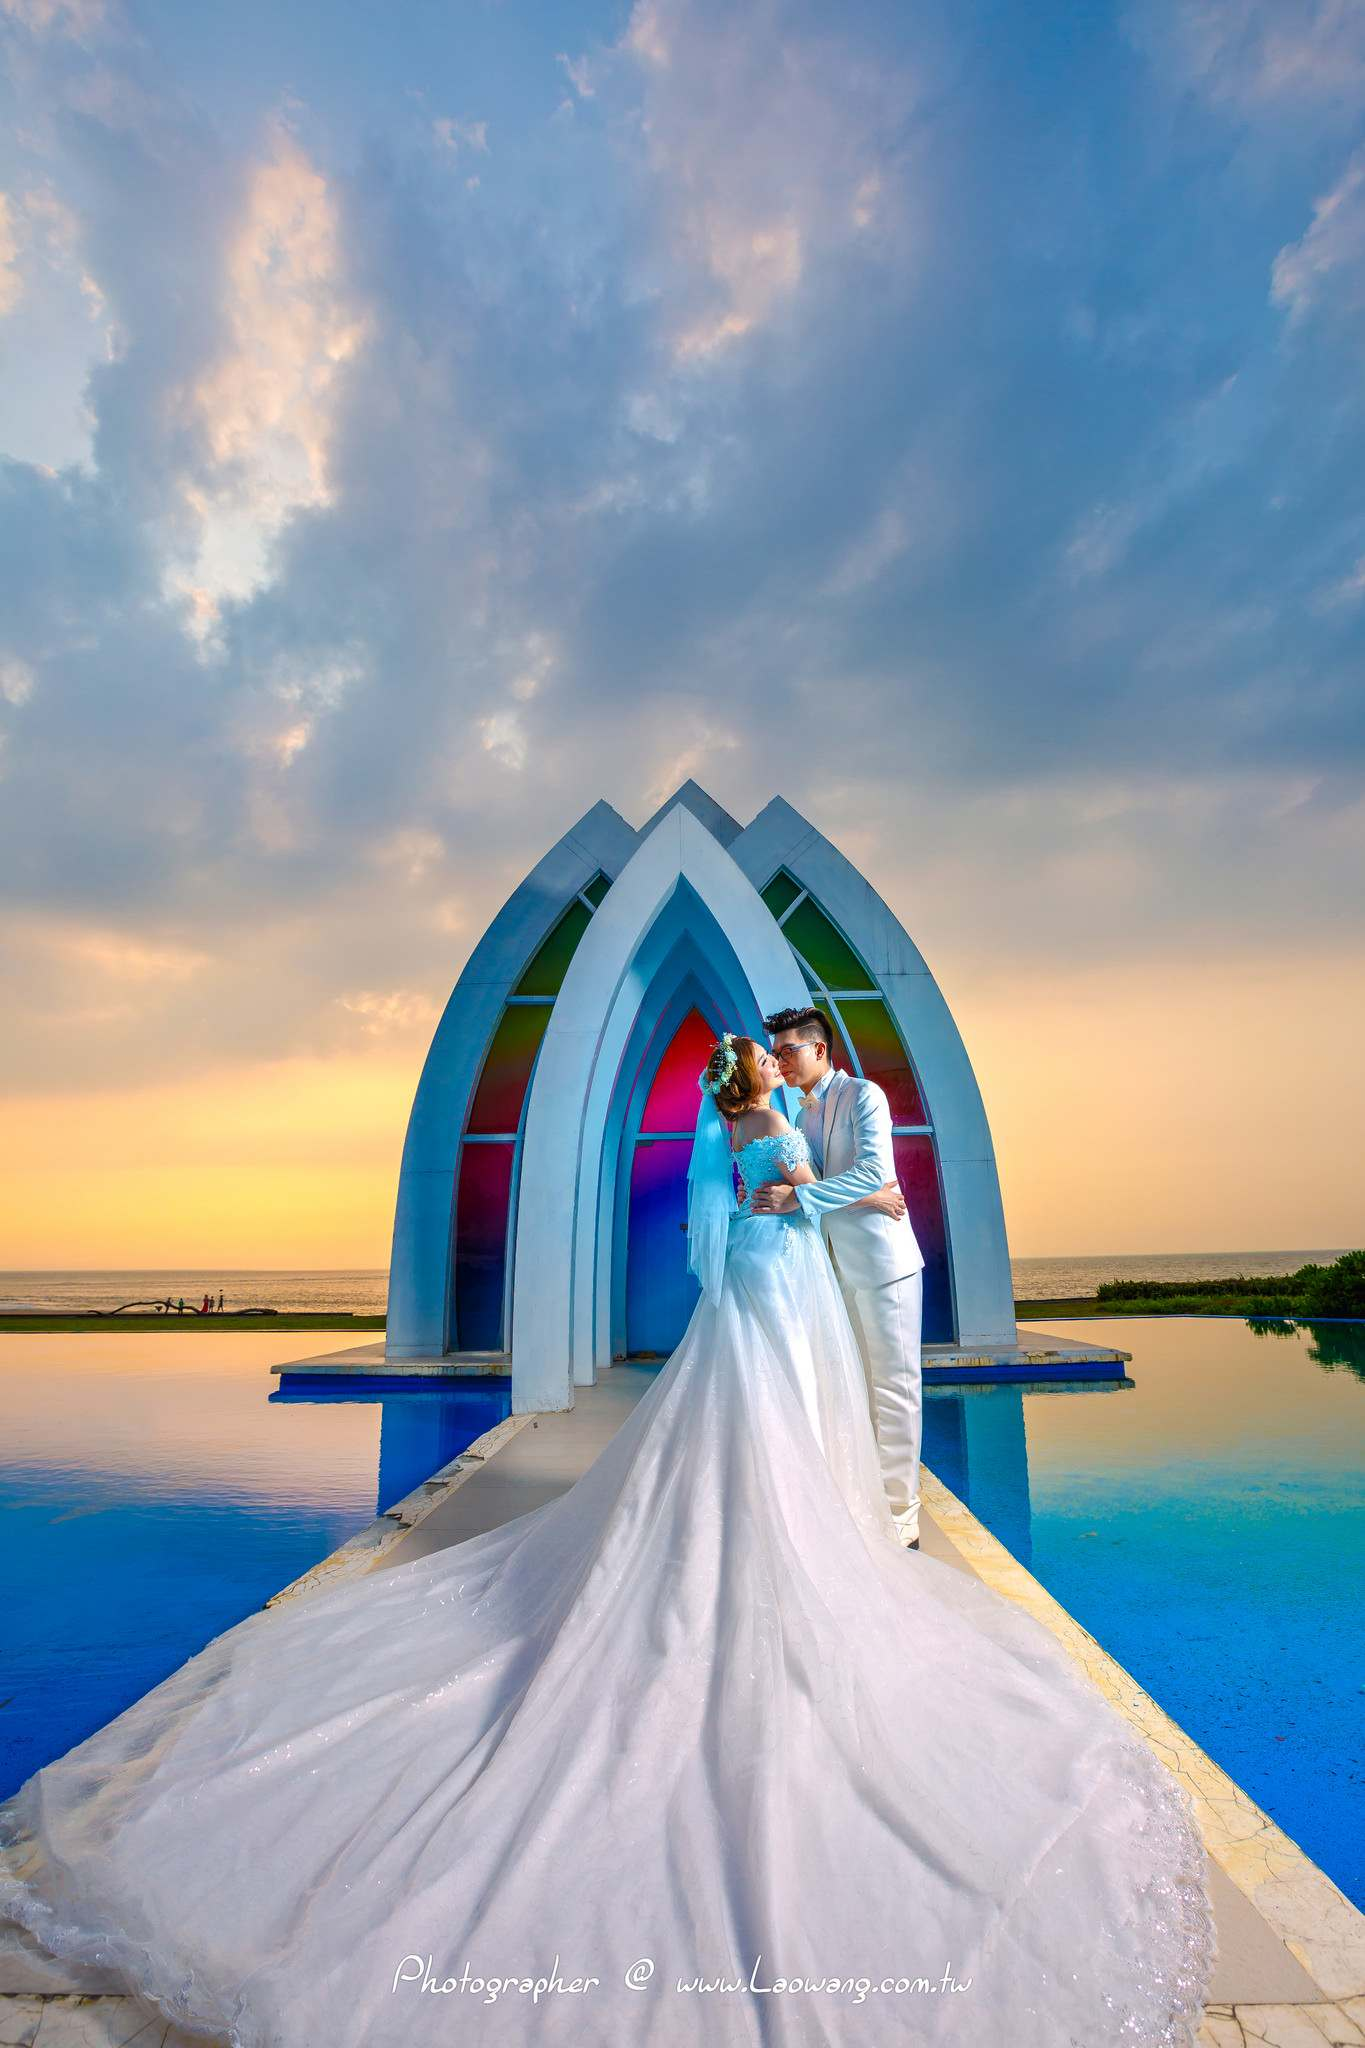 wedding photography14 The Best Wedding Photography Ideas by Lao Wang